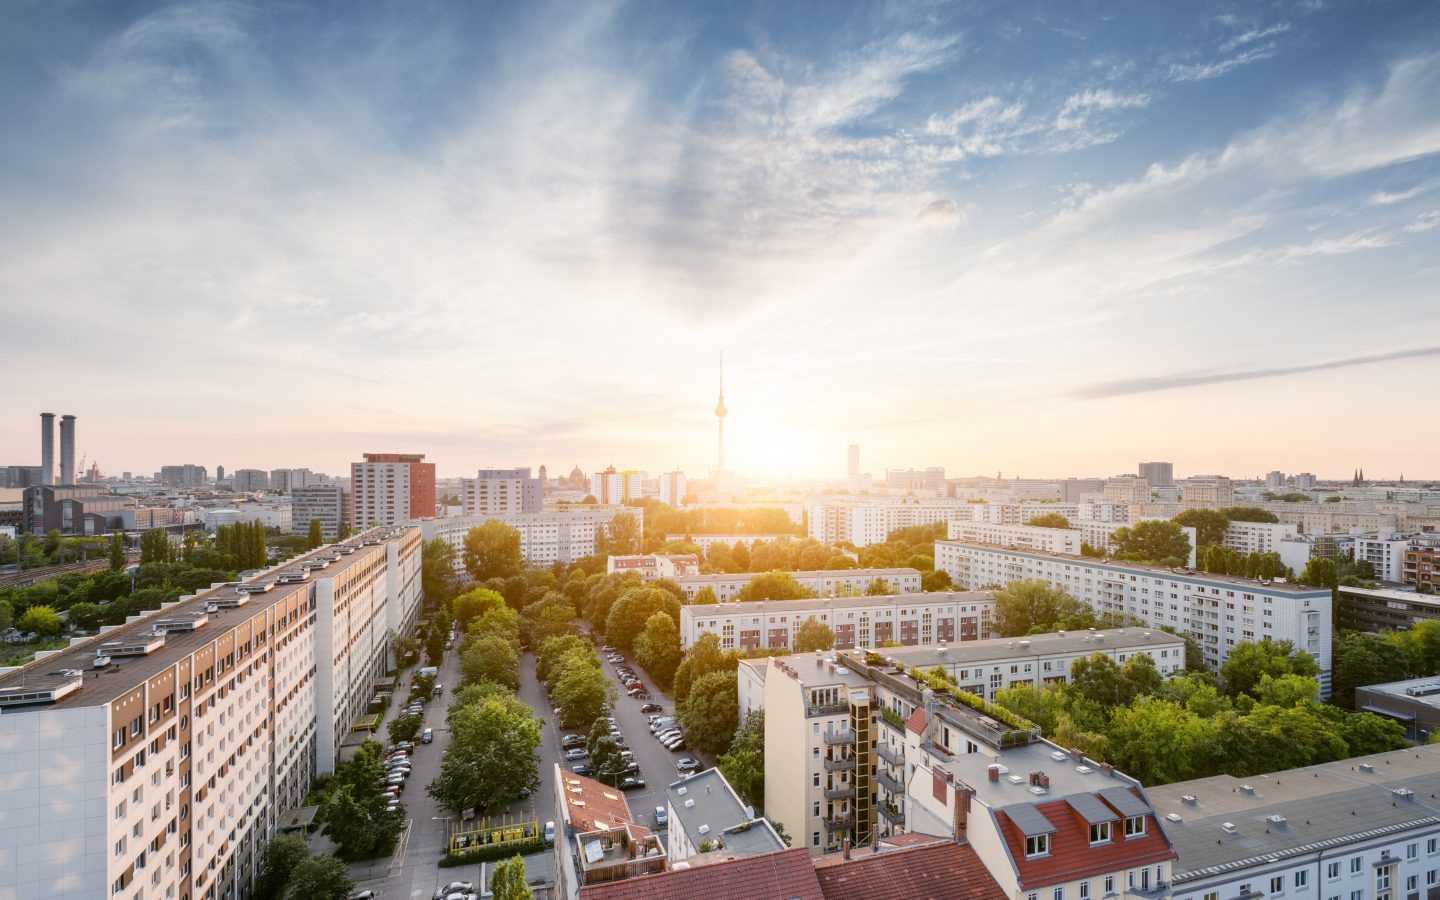 Berlin skyline in the summer